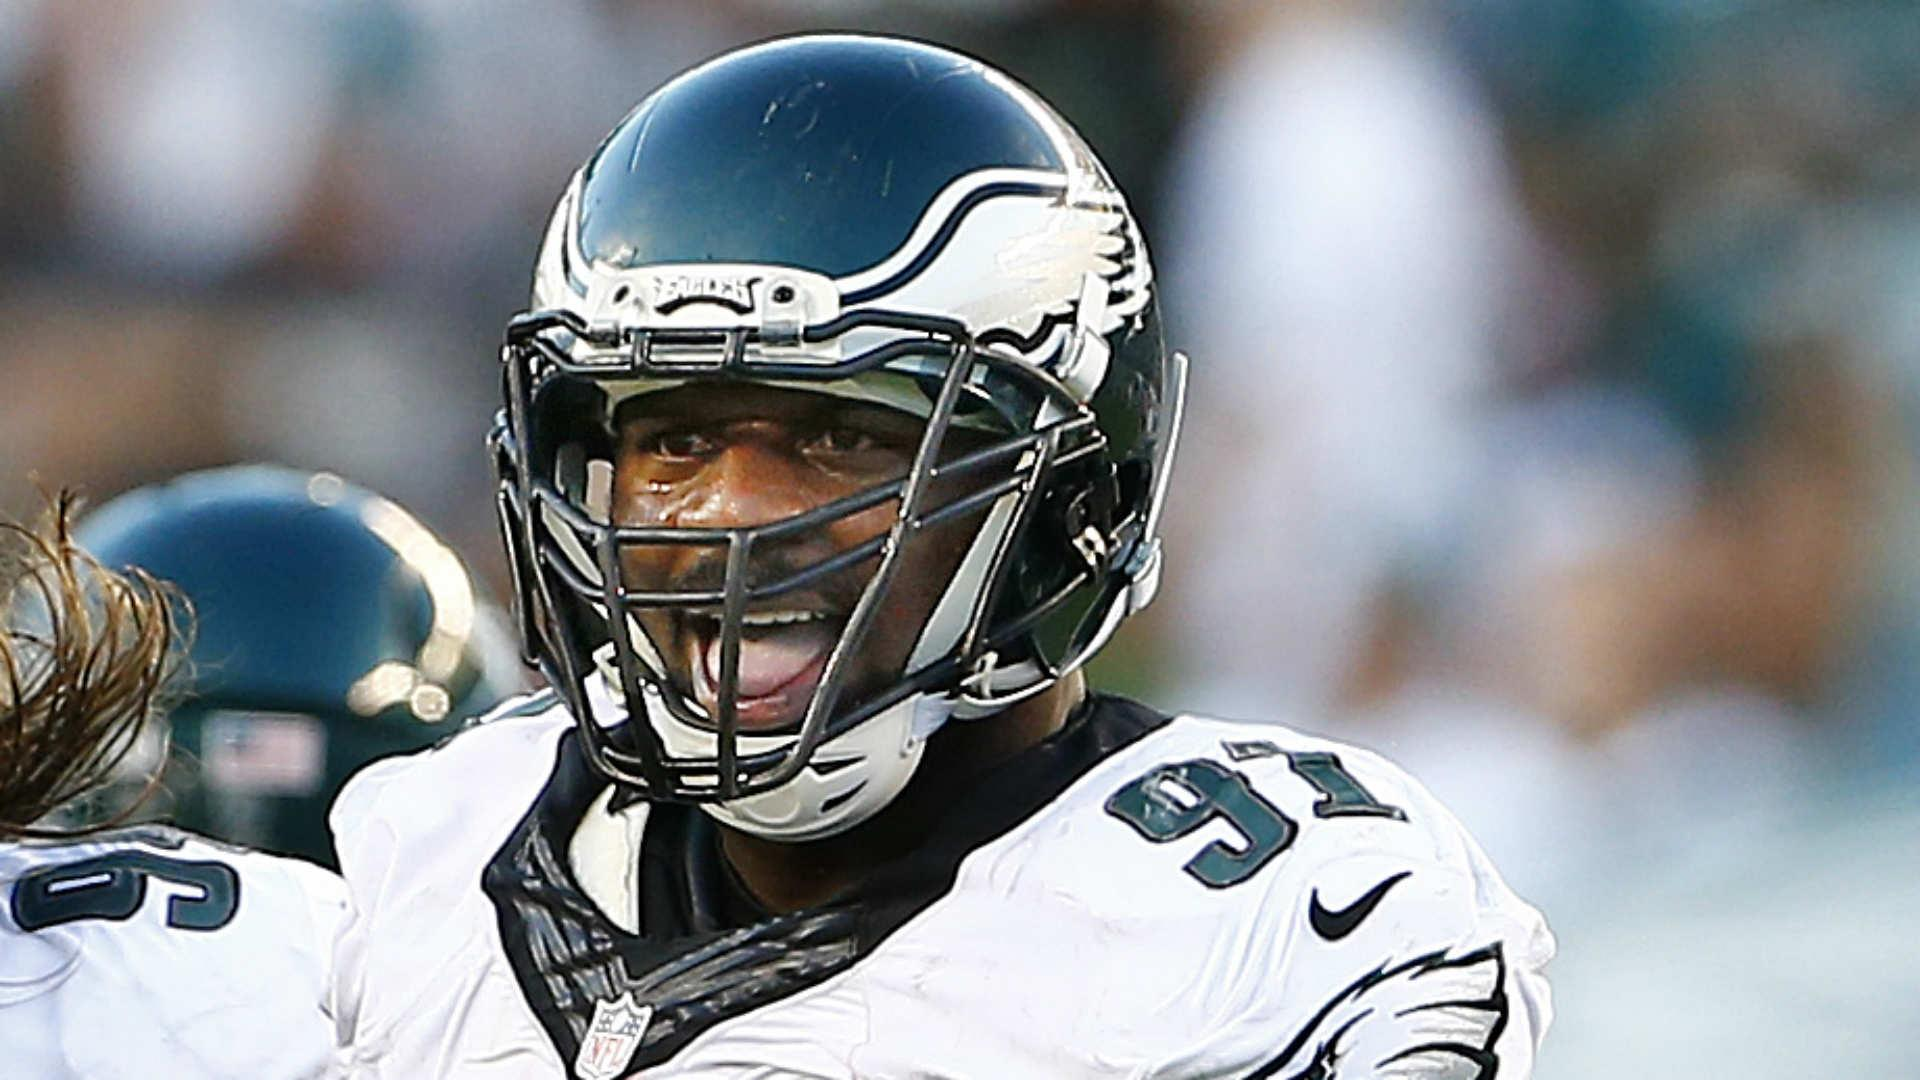 Fletcher Cox Sued >> Eagles DT Fletcher Cox sued for allegedly ruining a marriage, report says